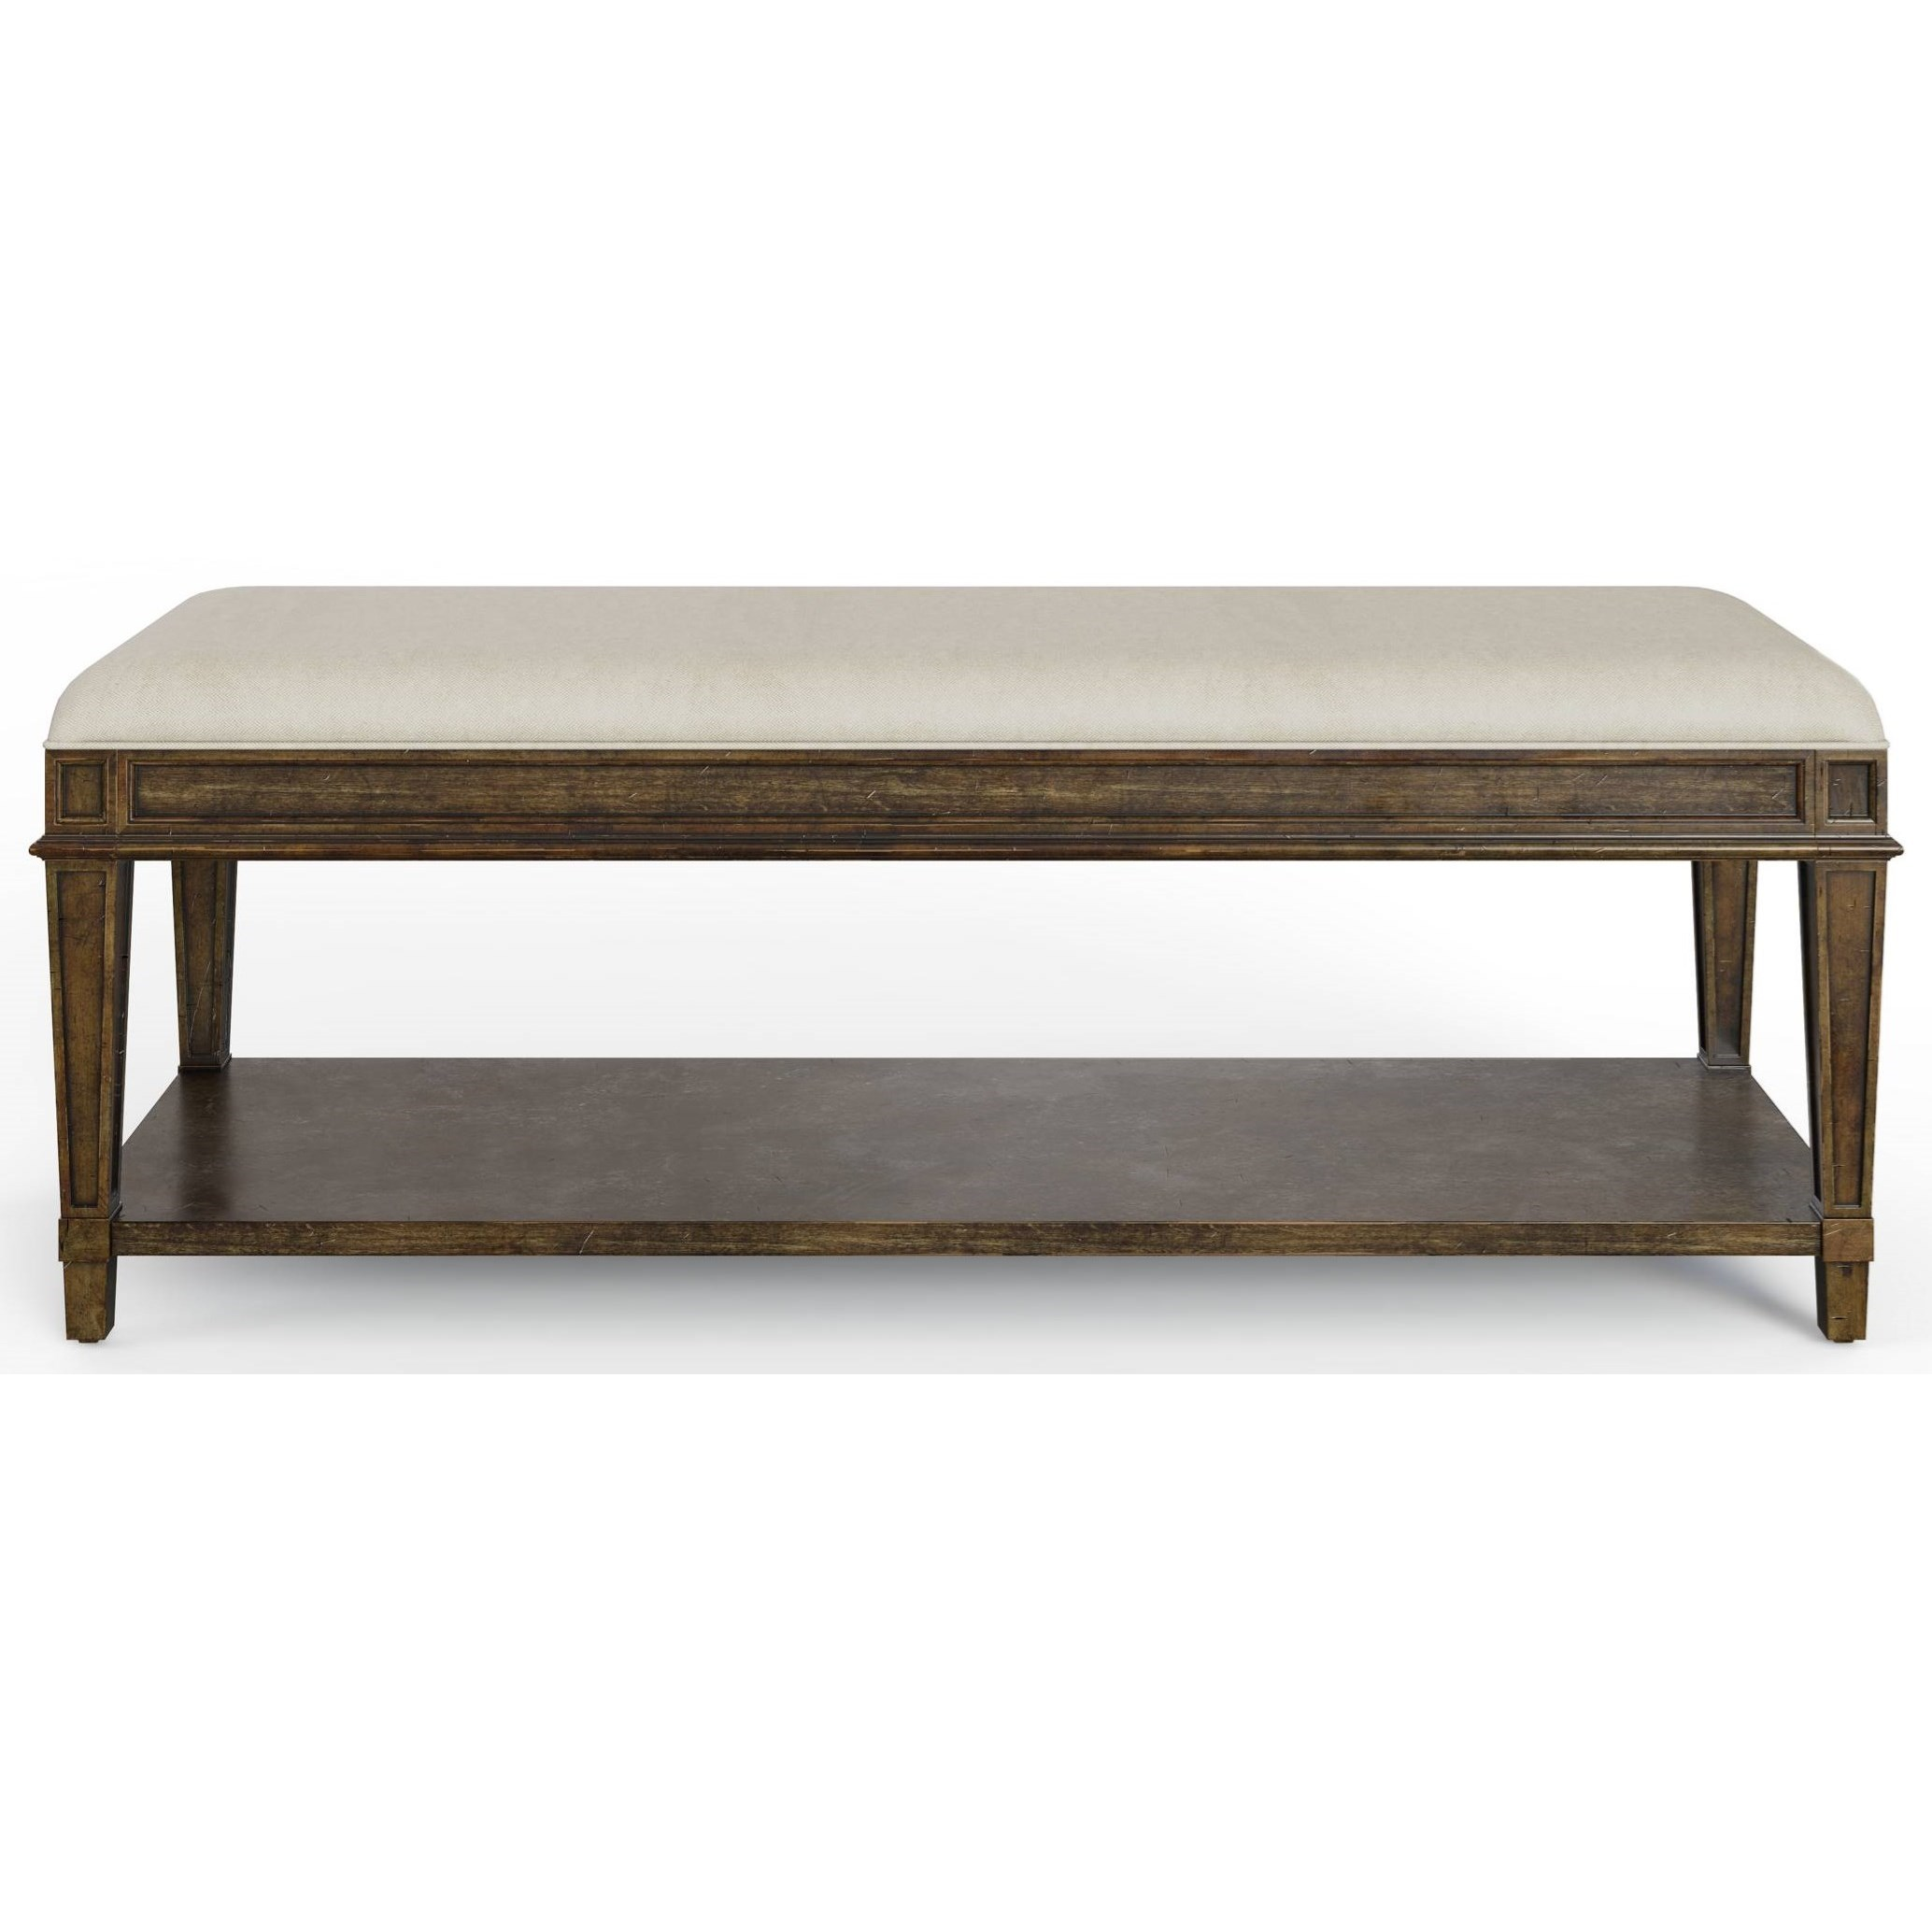 Hillside Bed End Bench by Stanley Furniture at Alison Craig Home Furnishings